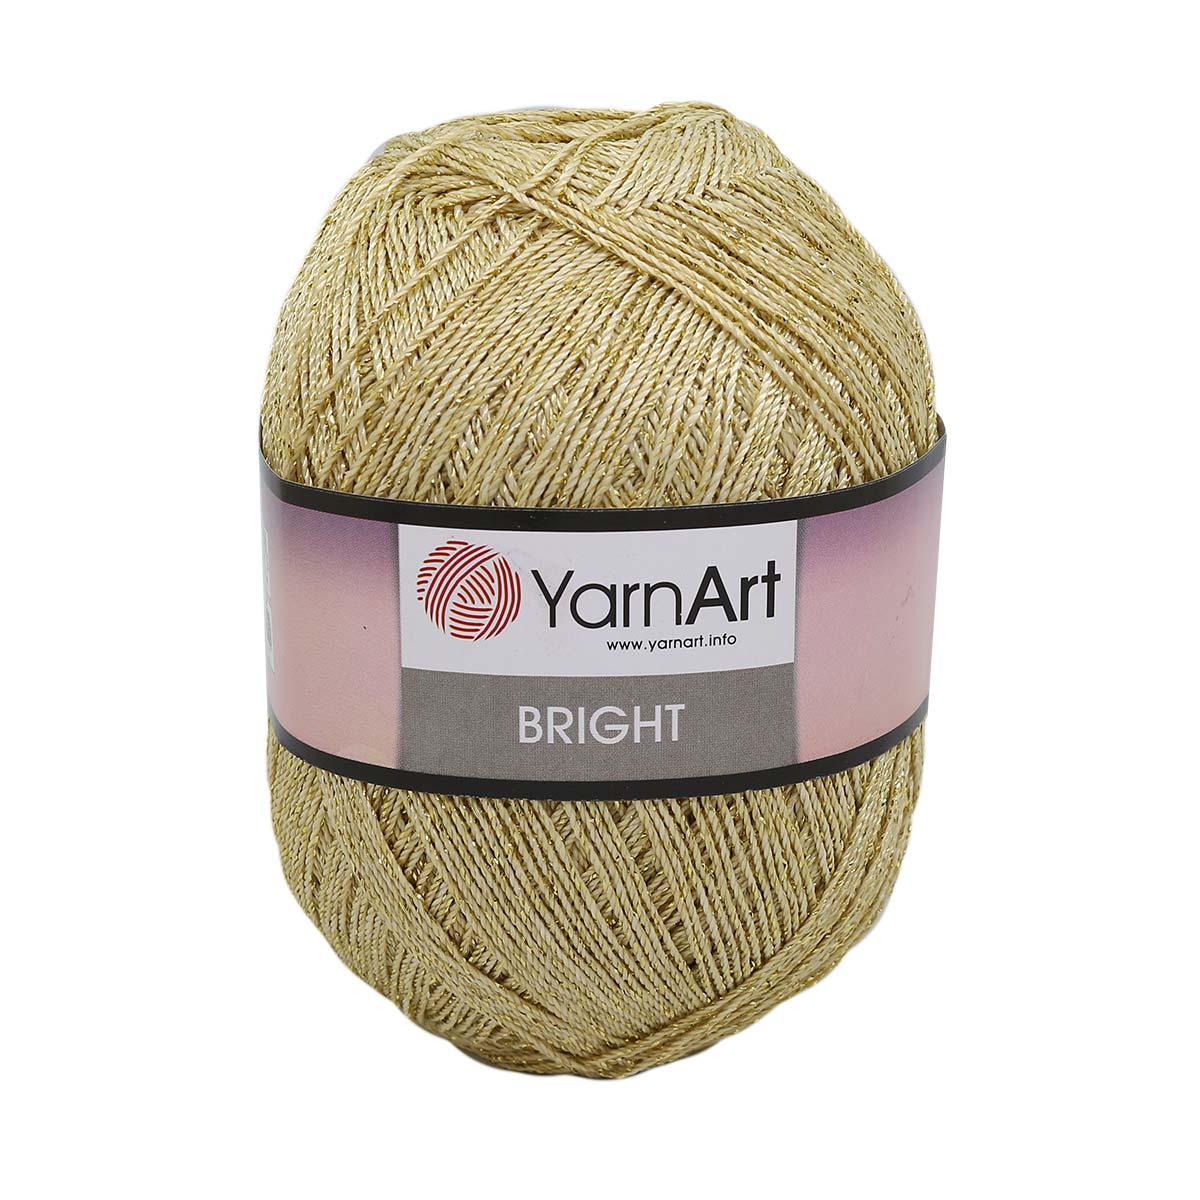 Пряжа Yarn art 'Bright' (80%полиамид, 20%метанит полиэстер)